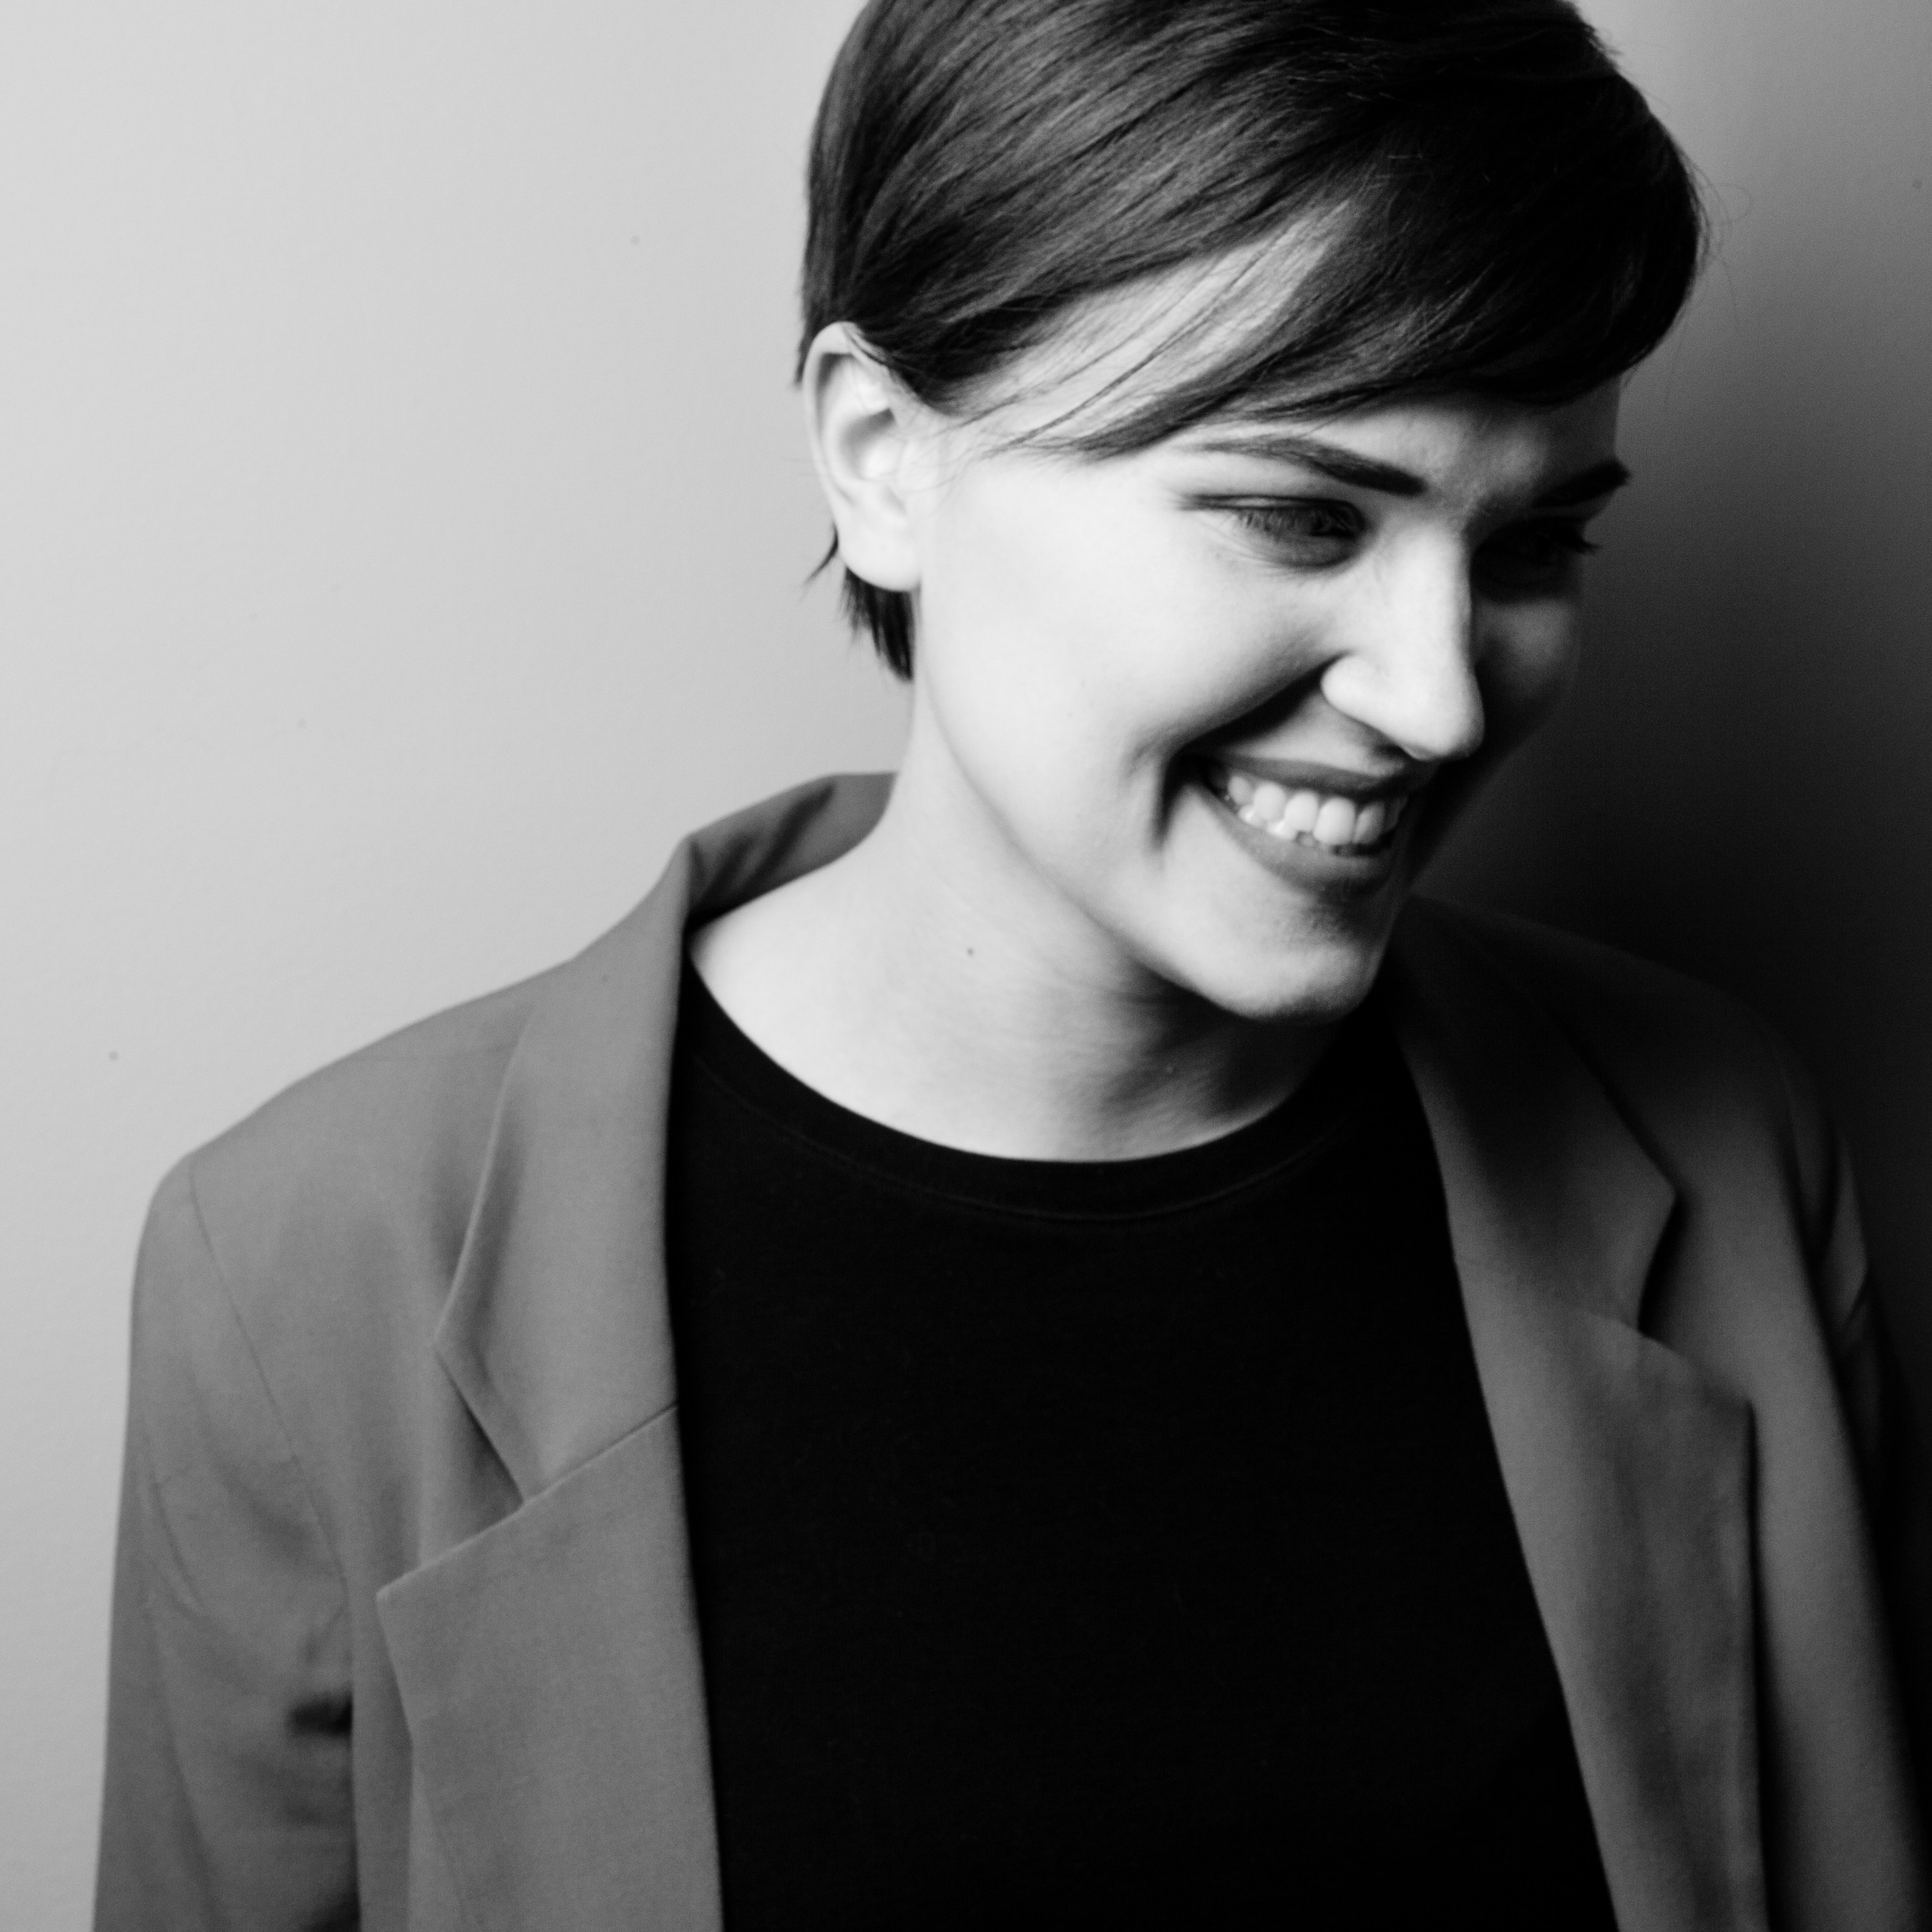 Veronica Roth is the #1 New York Times bestselling author of the DIVERGENT series with more than 32 million copies sold worldwide.